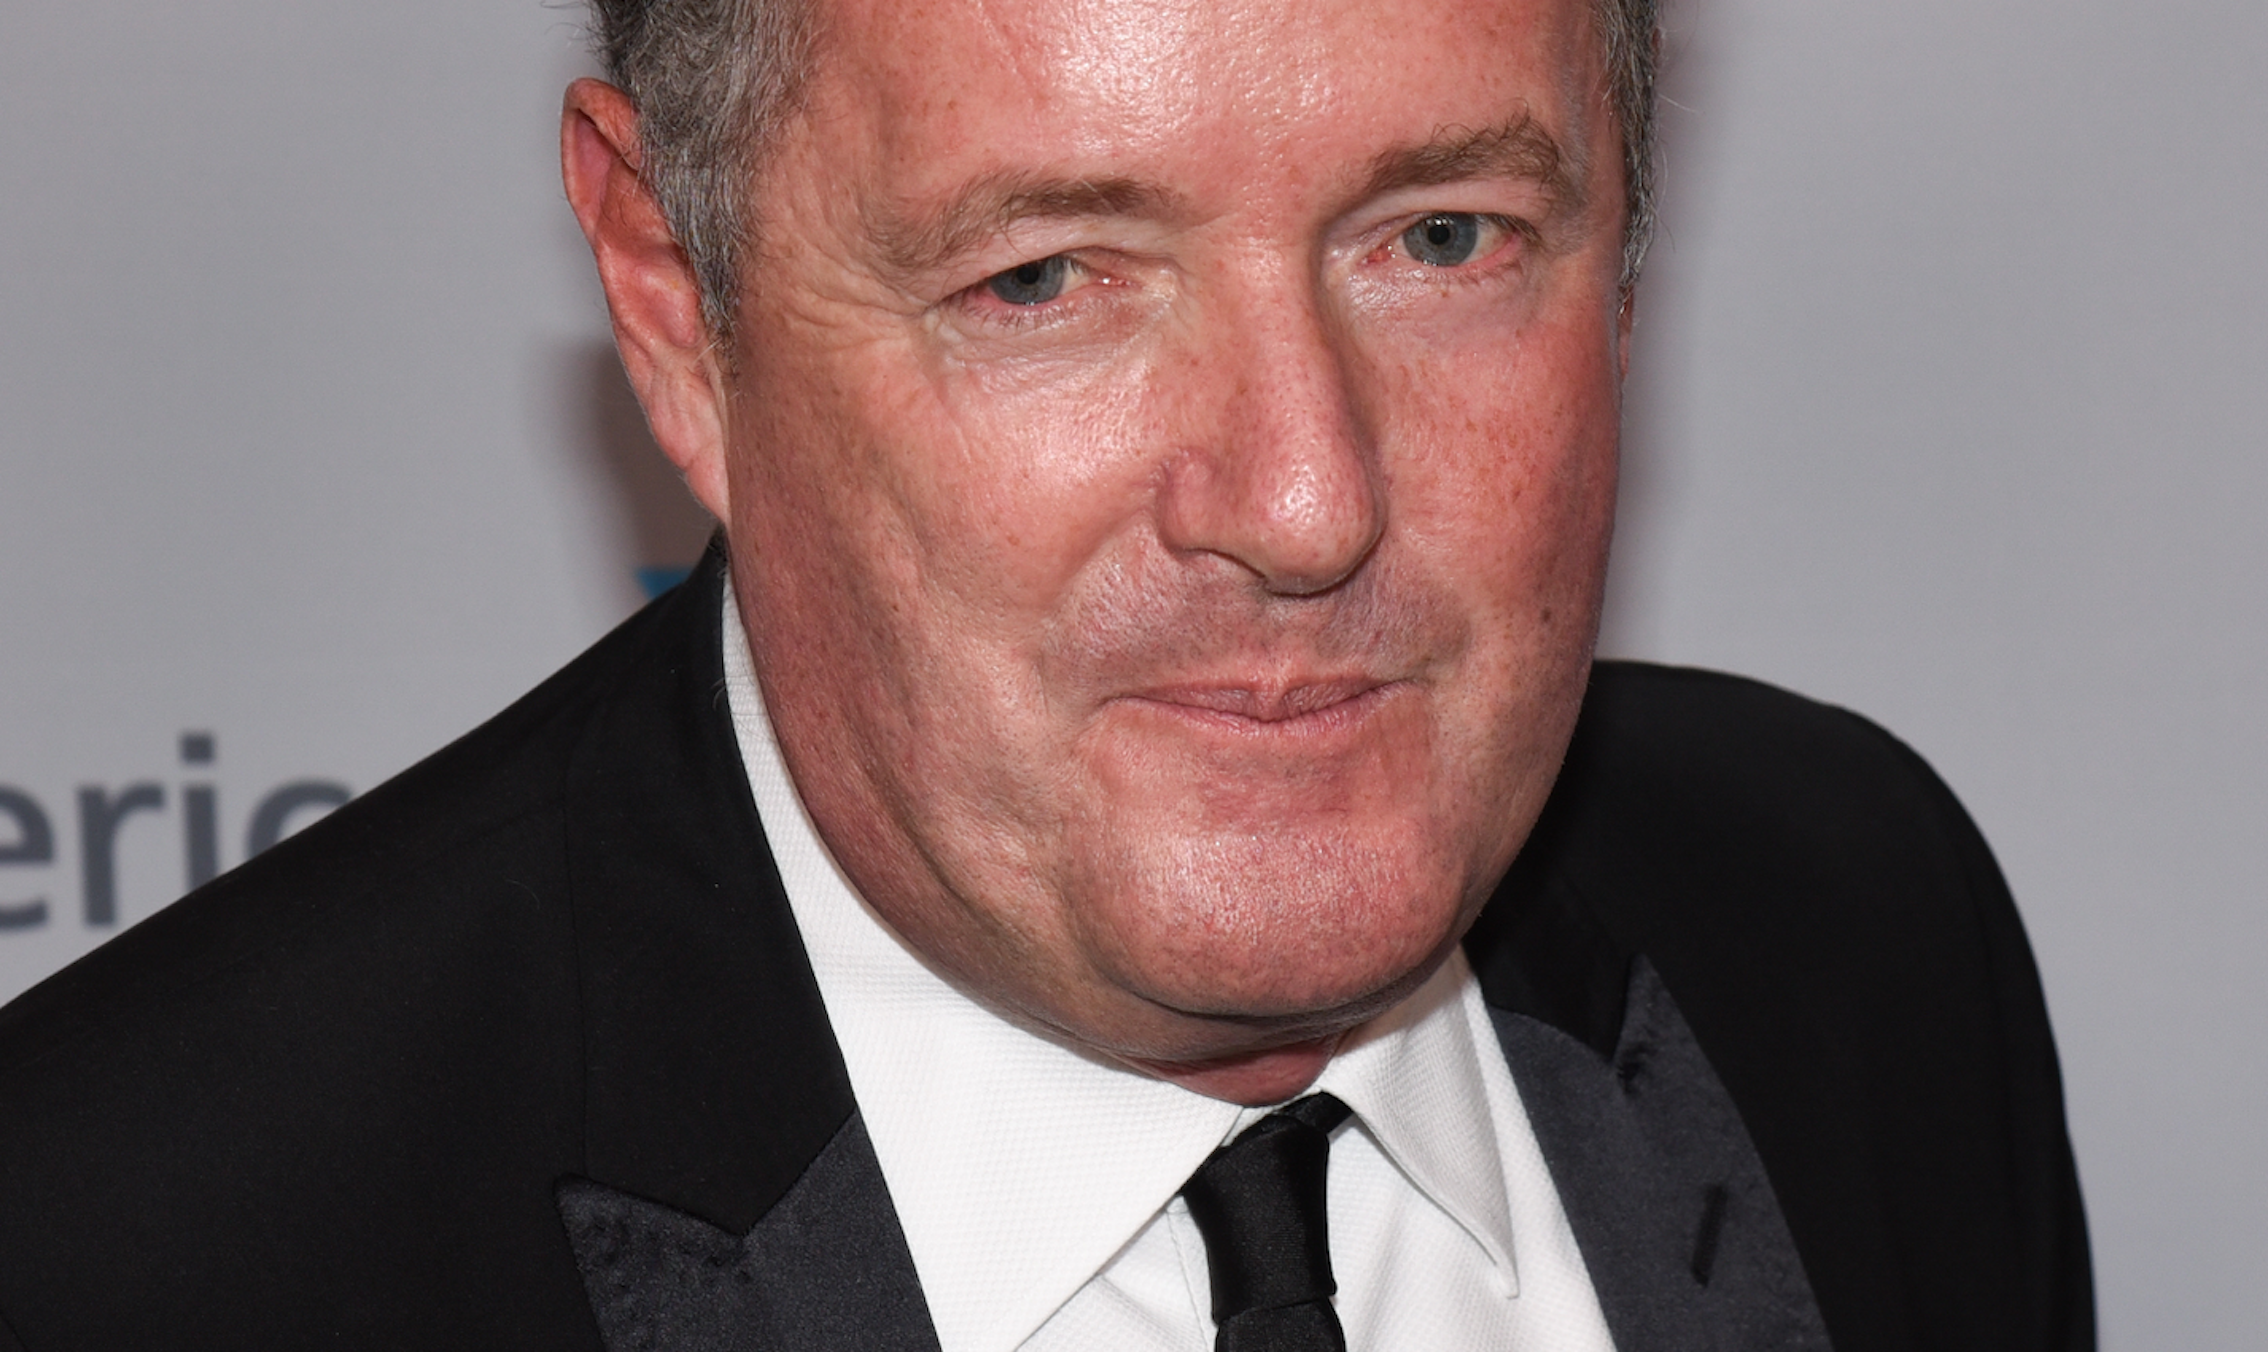 Piers Morgan pays tribute to dad on his birthday with sweet family snap